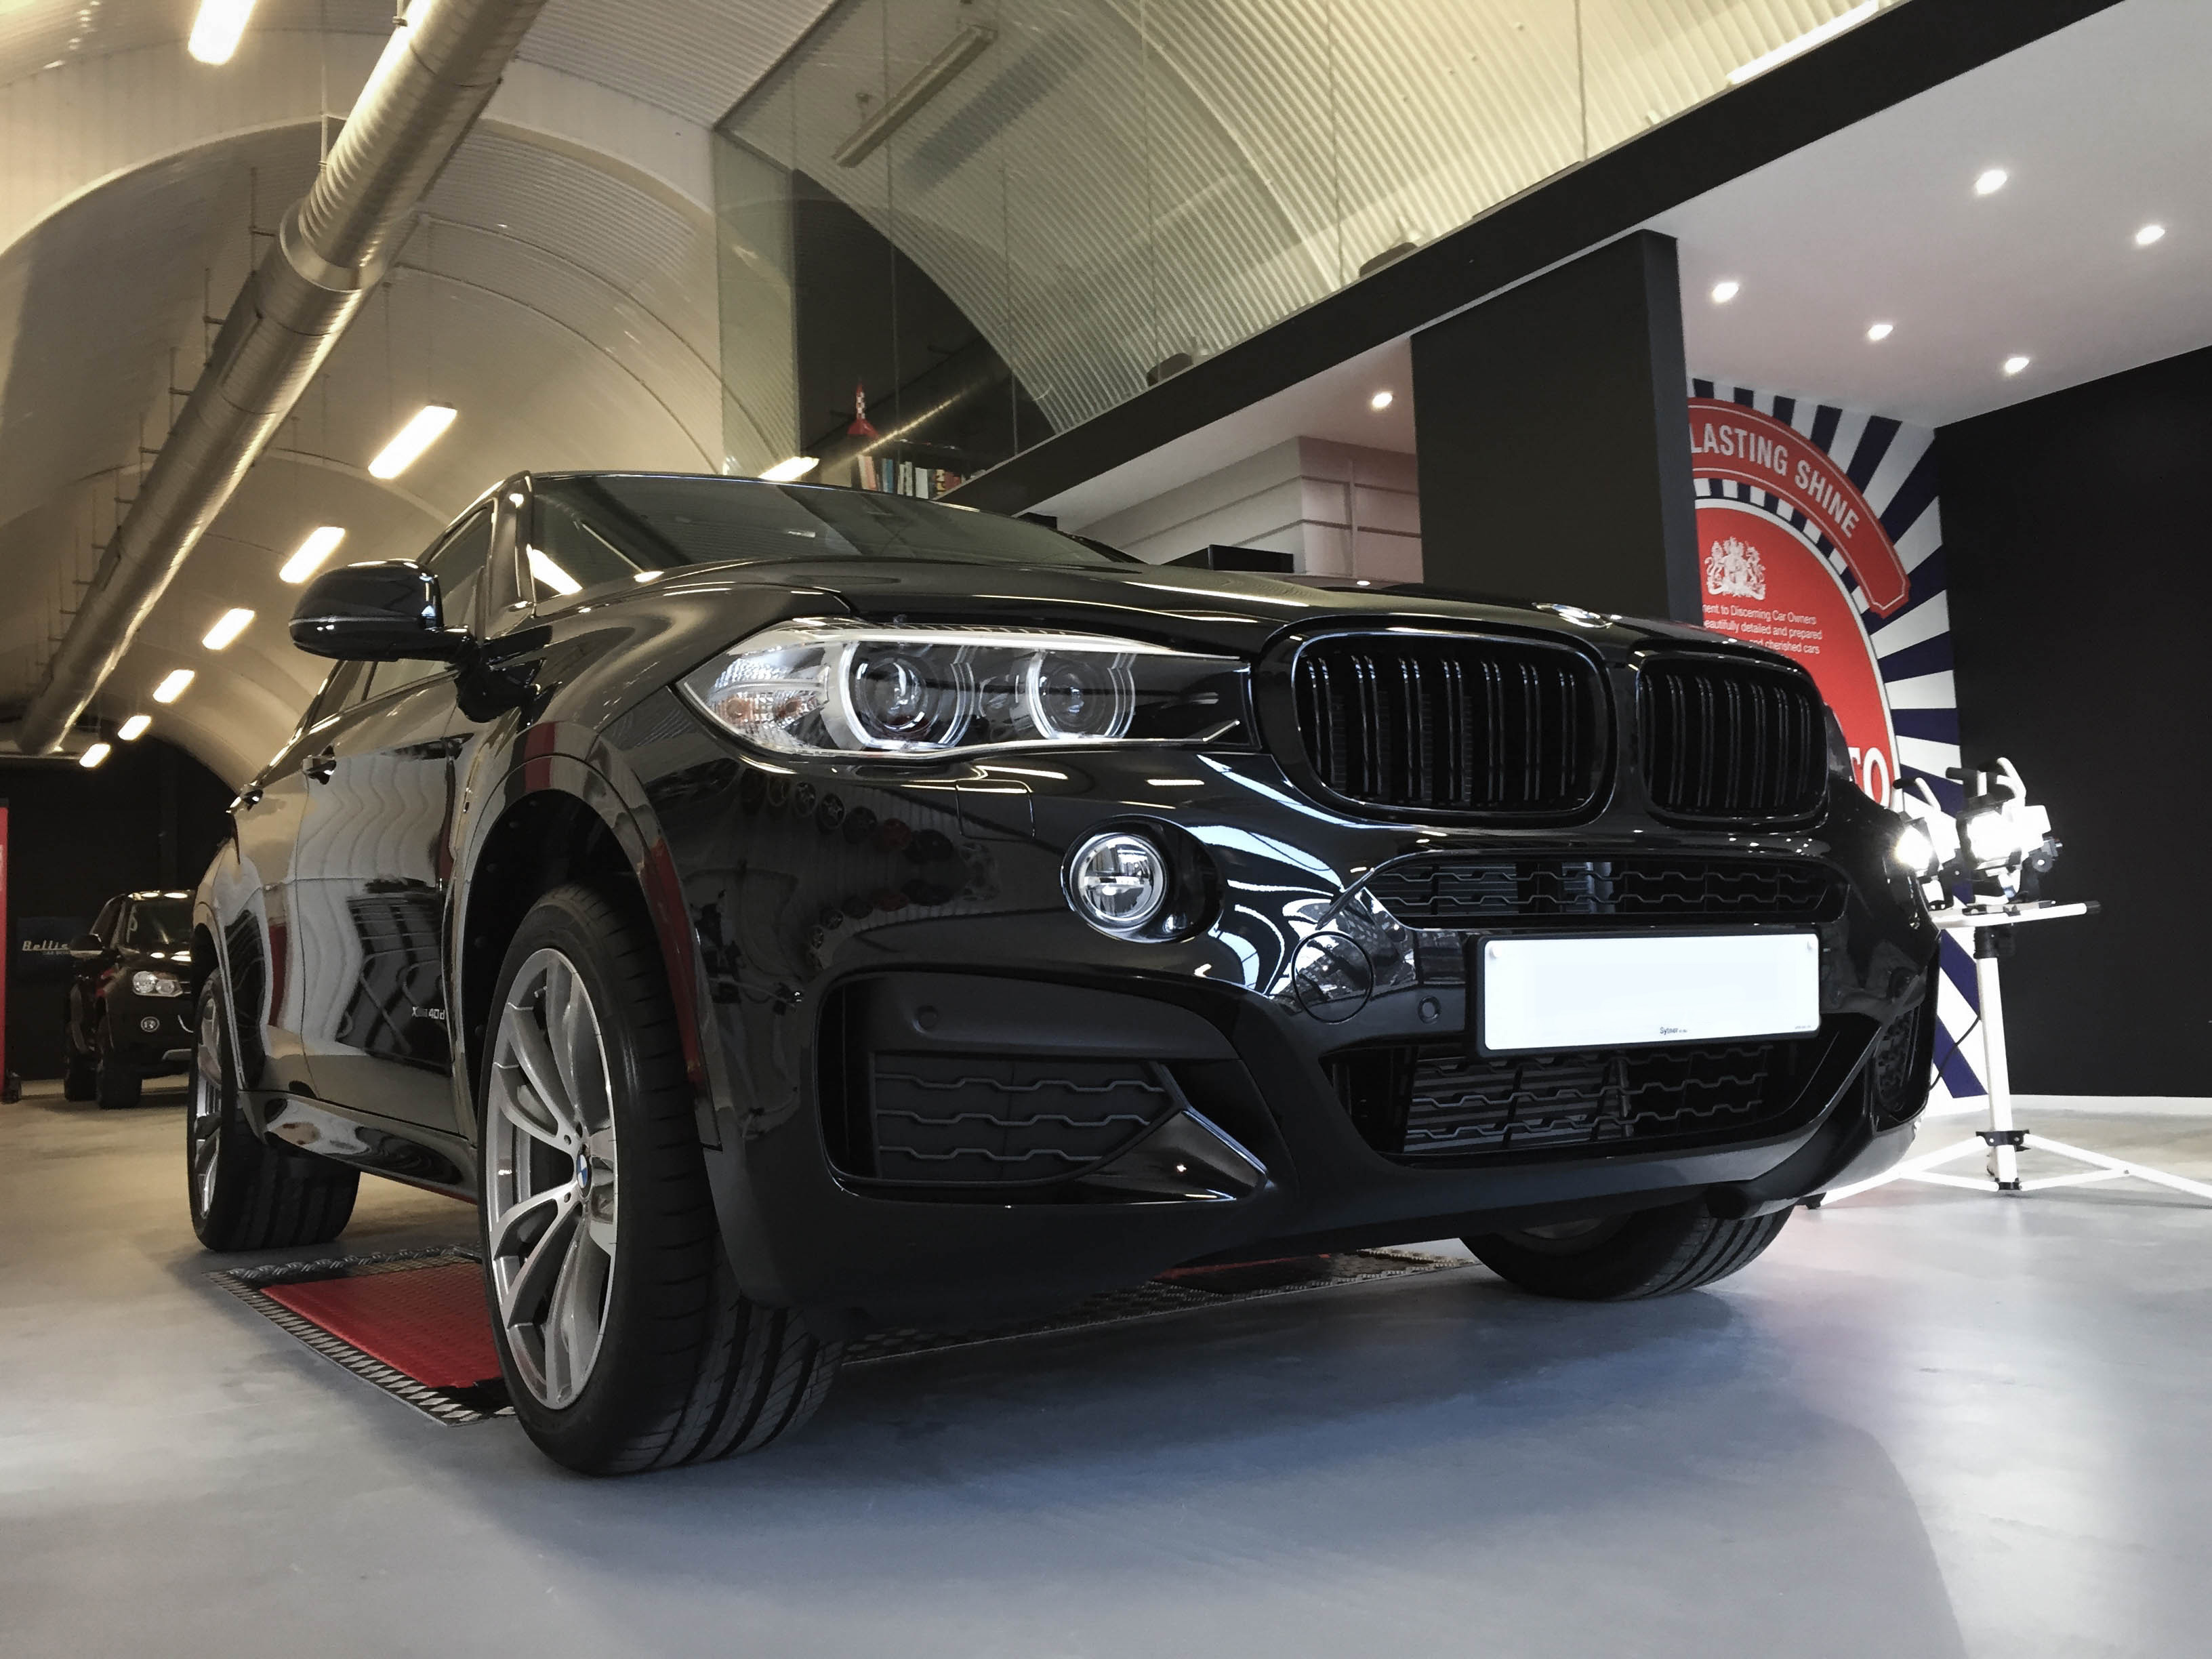 BMW X6 – Front